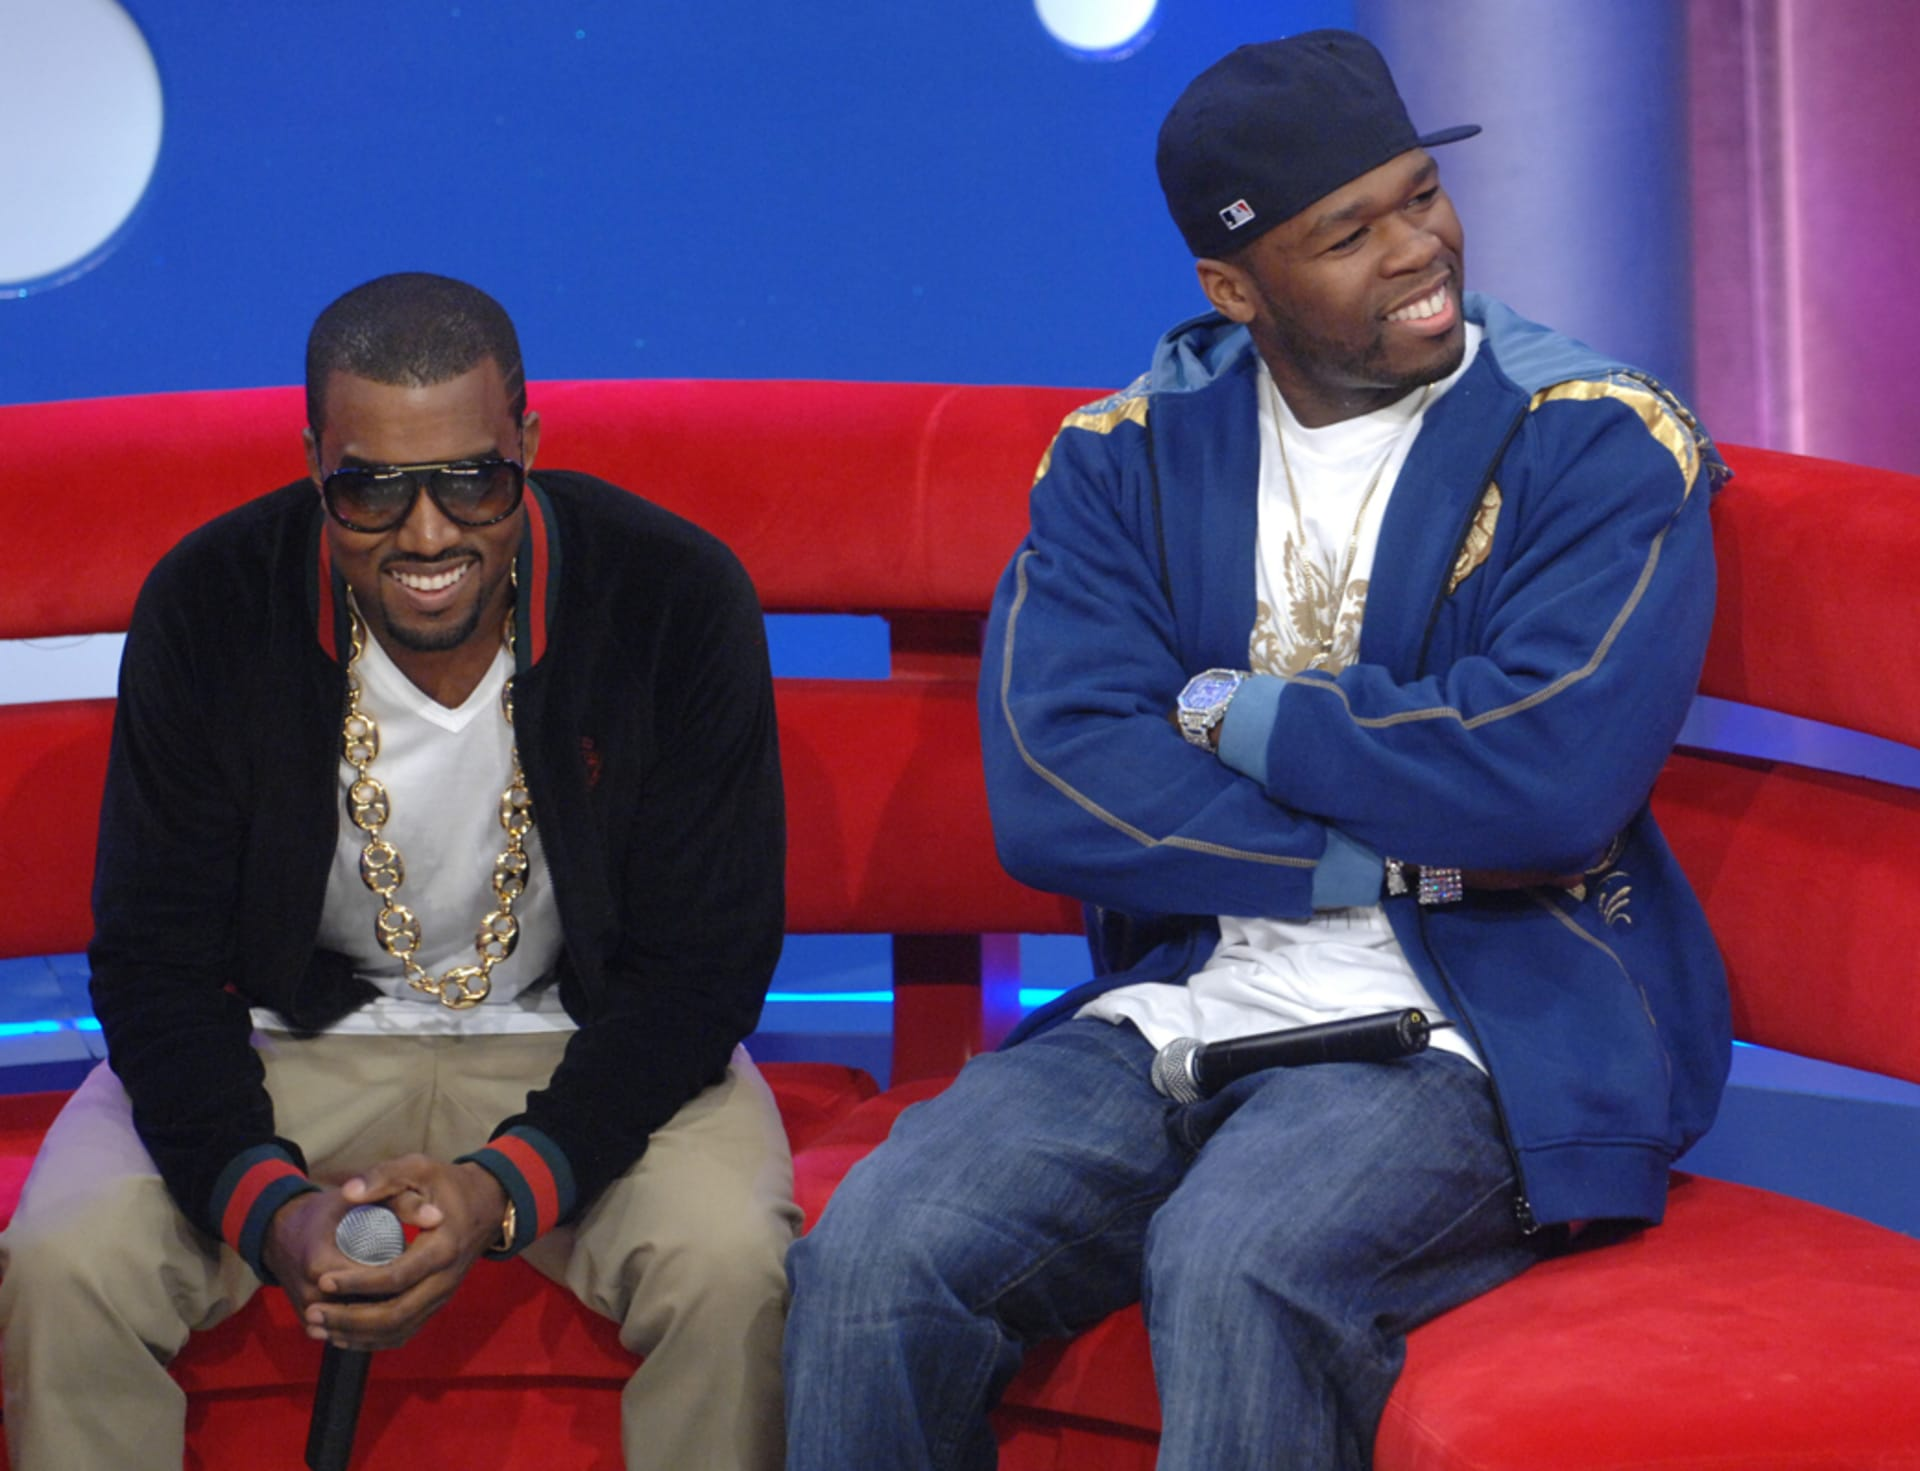 Kanye West And 50 Cent Appear On Bets 106 Park At Bet Studios Sept 11 2007 In New York City D Barket Getty Images